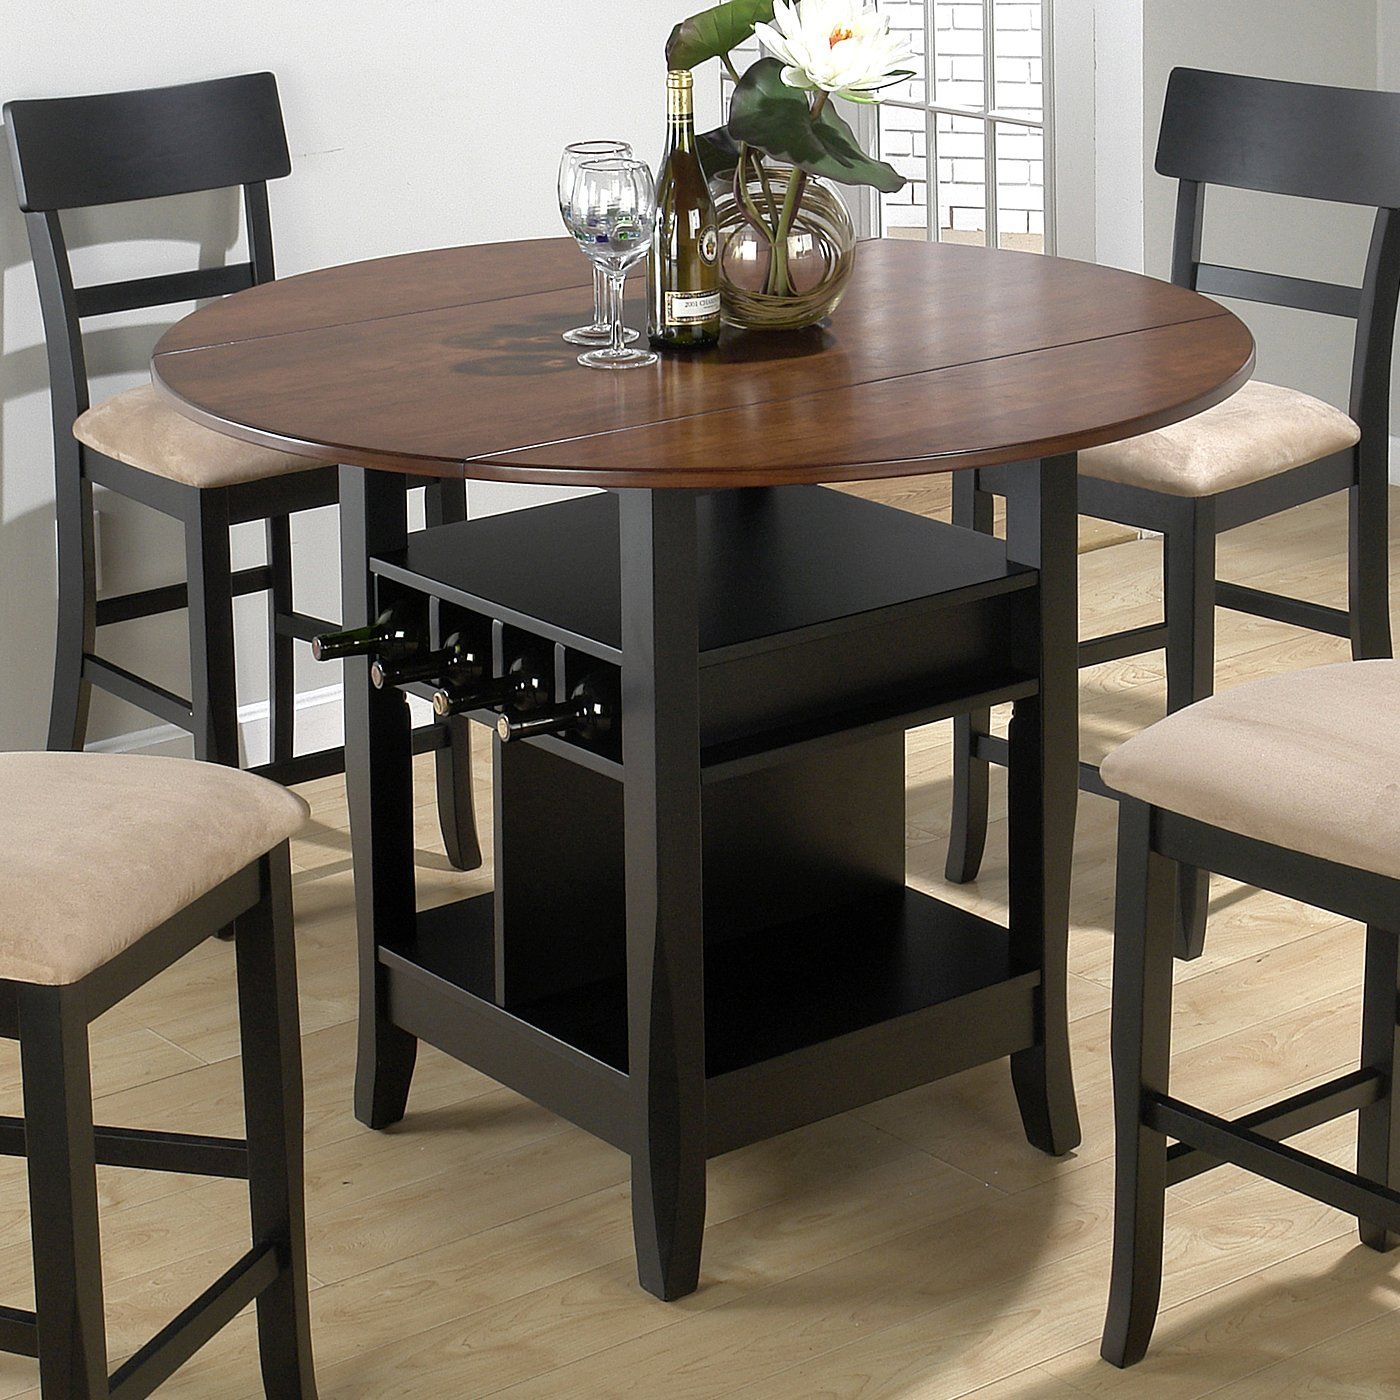 skillful dining table with storage. Jofran 218 48 Counter Height Dining Table  ATG Stores Furniture